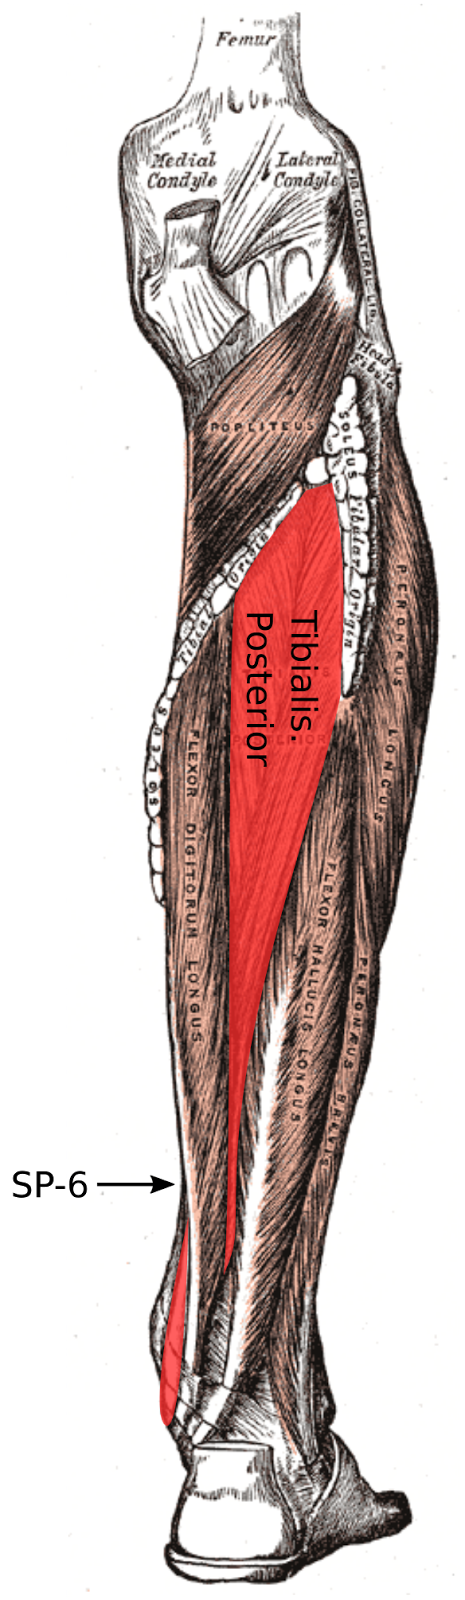 Anatomy of the Sinew Channels: The Fascial Slings of the Foot and ...